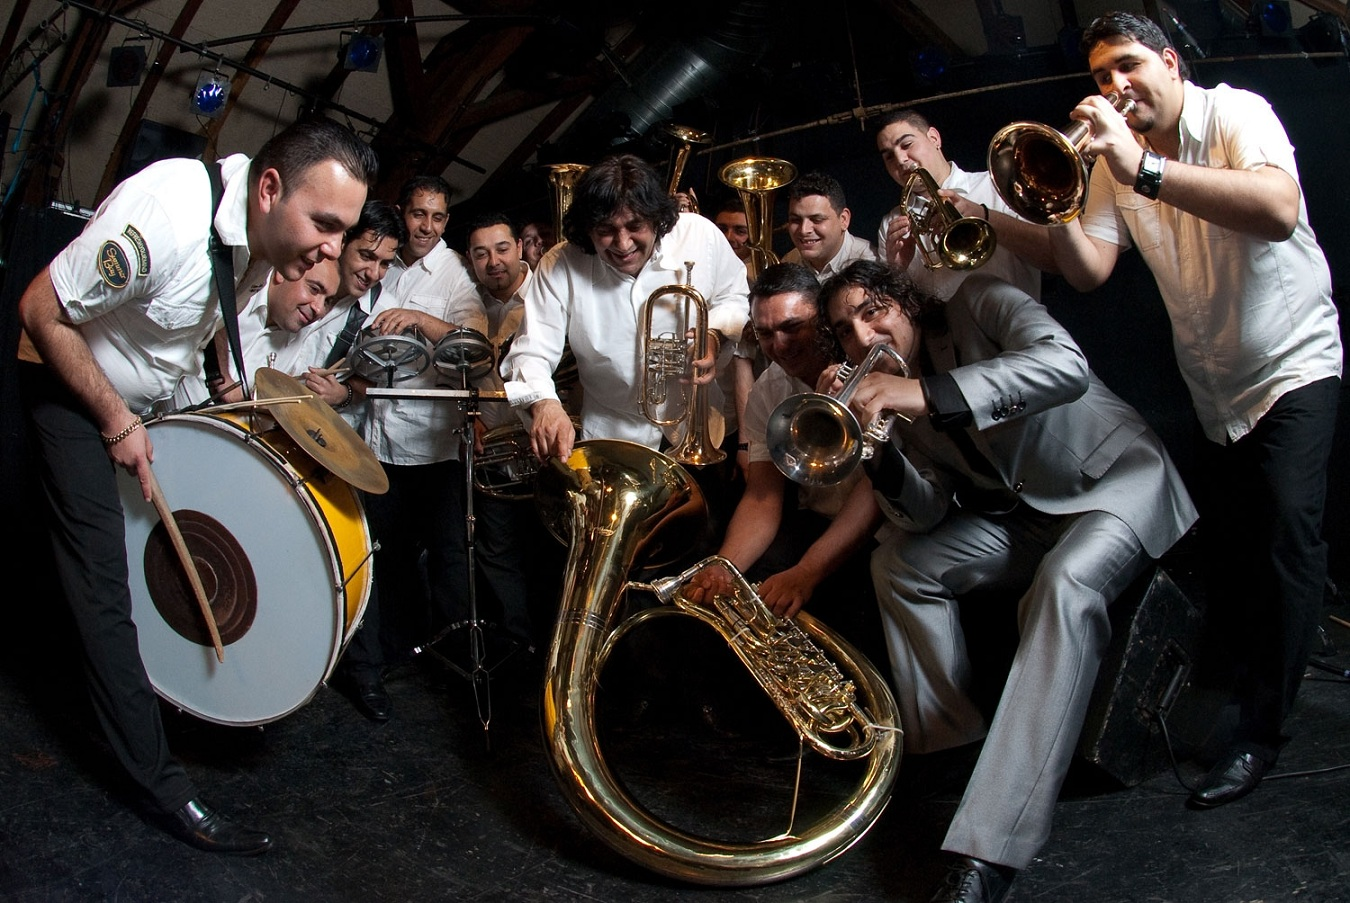 Boban and Marko Marković Brass Band